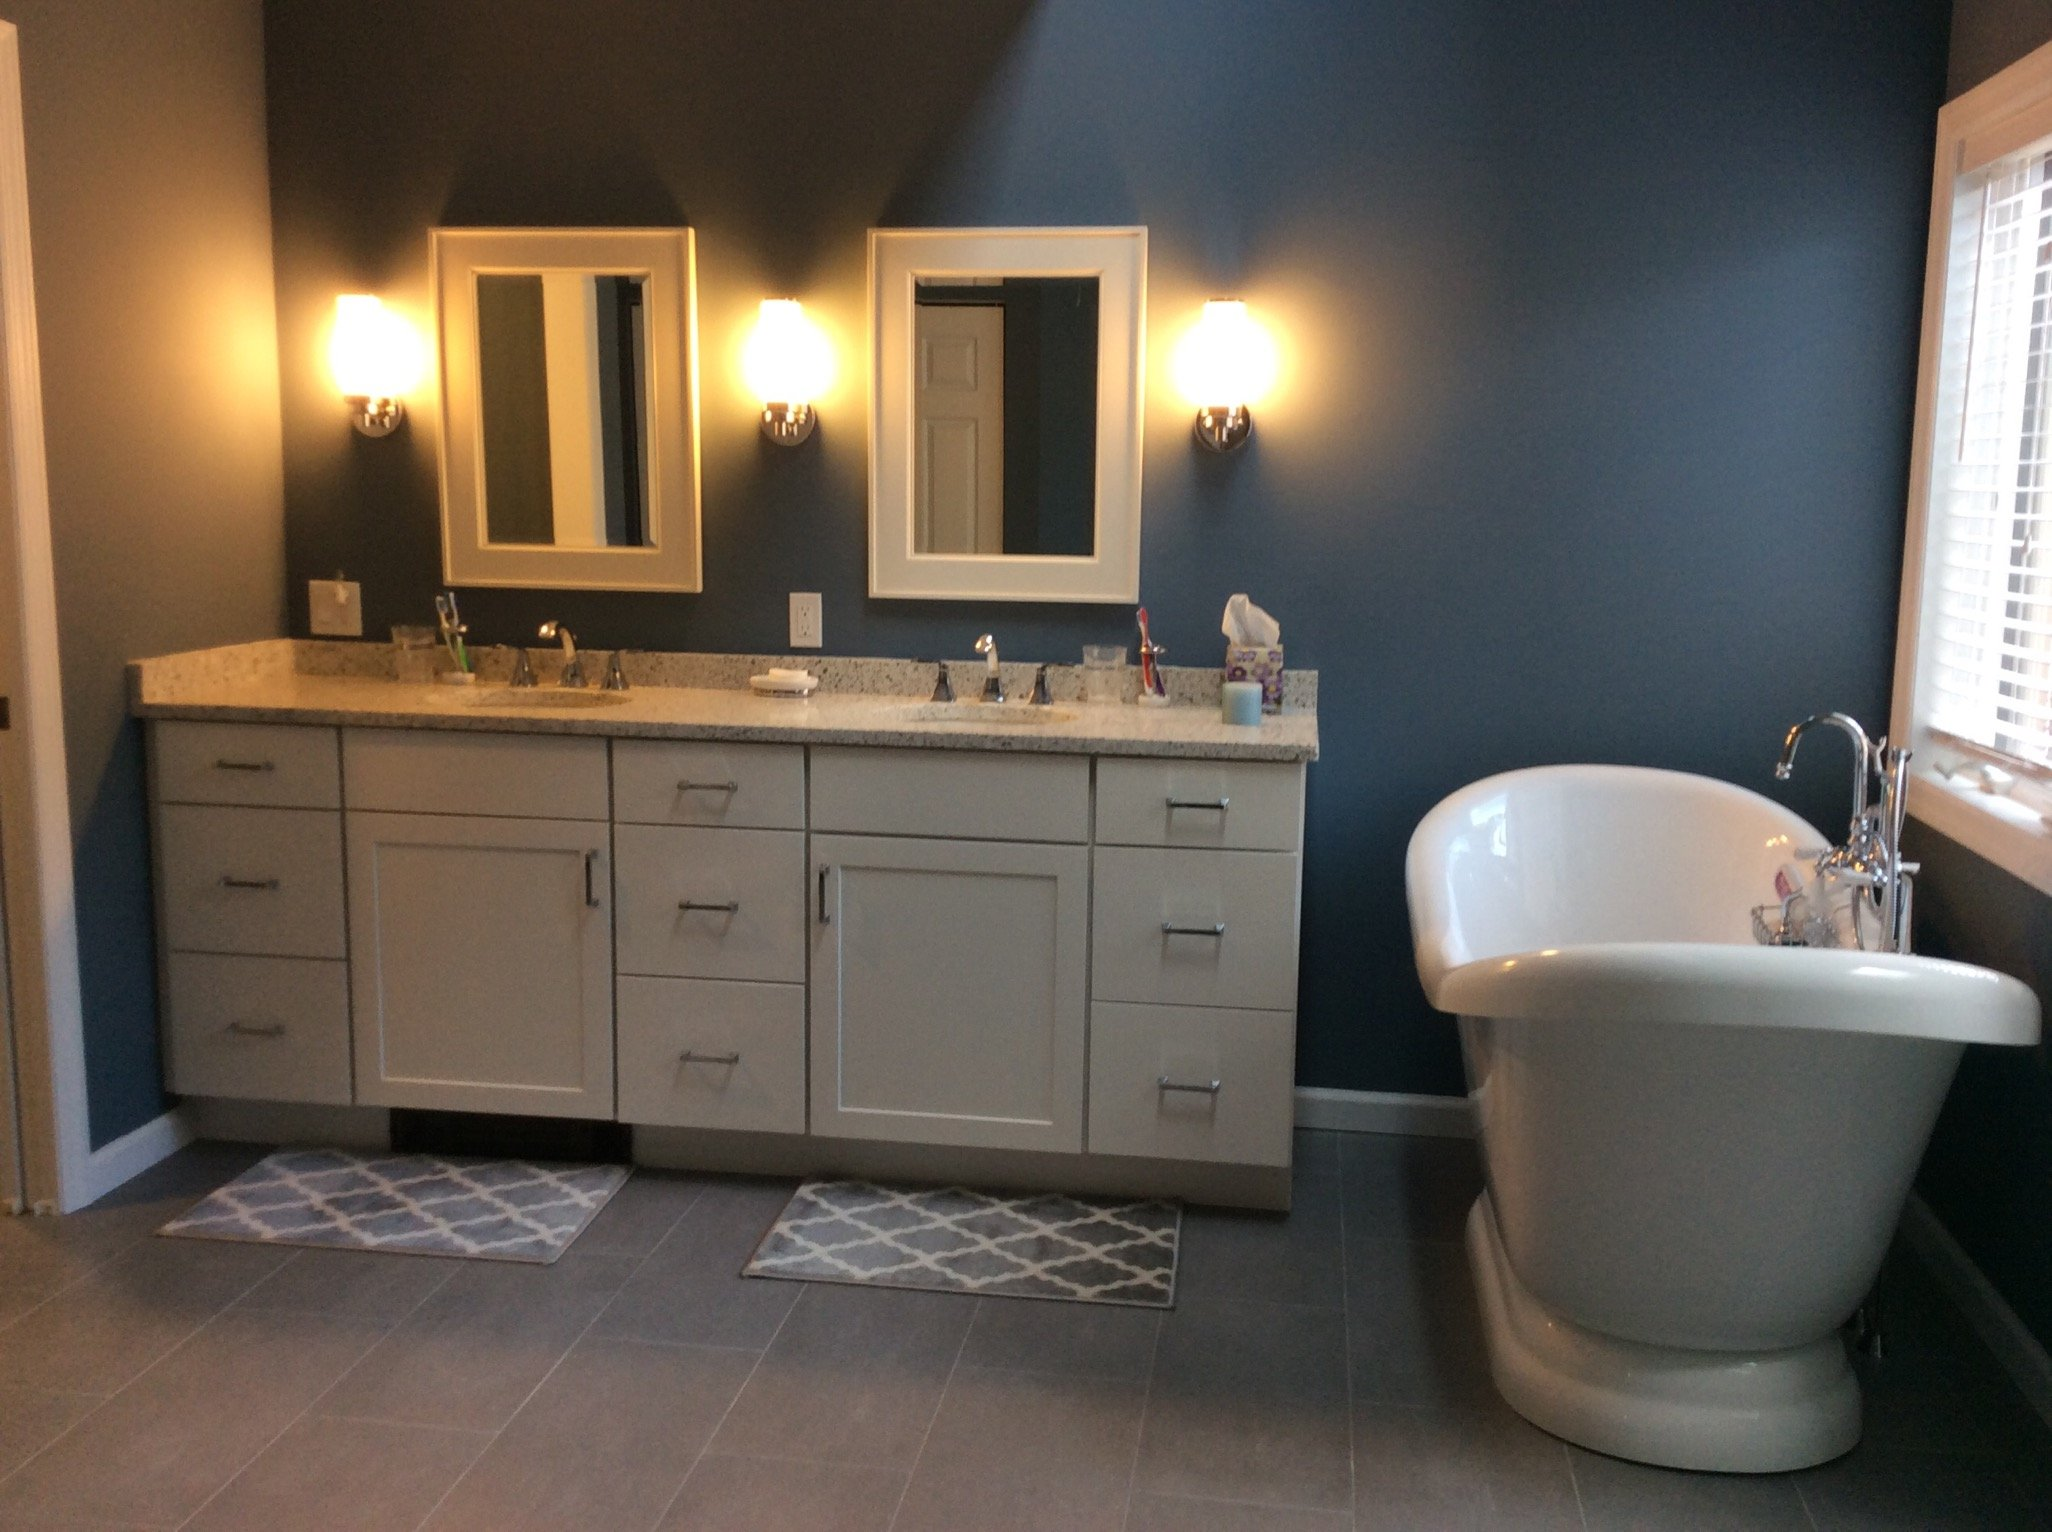 Bathroom Renovations & Remodel Ramsey, NJ